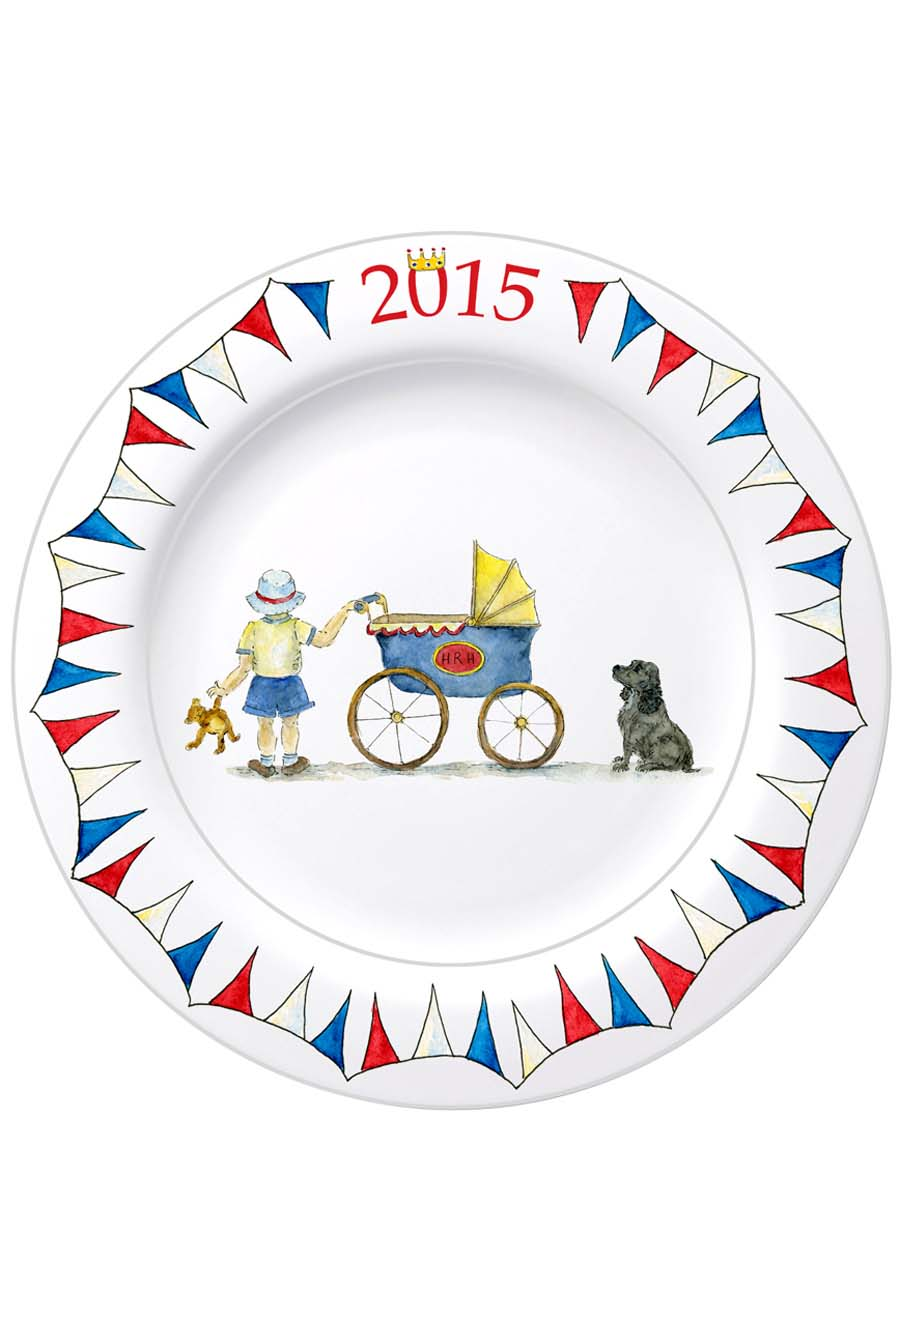 This plate of Prince George and Lupo can be used for snacking or hanging on the wall. (BBC Shop)